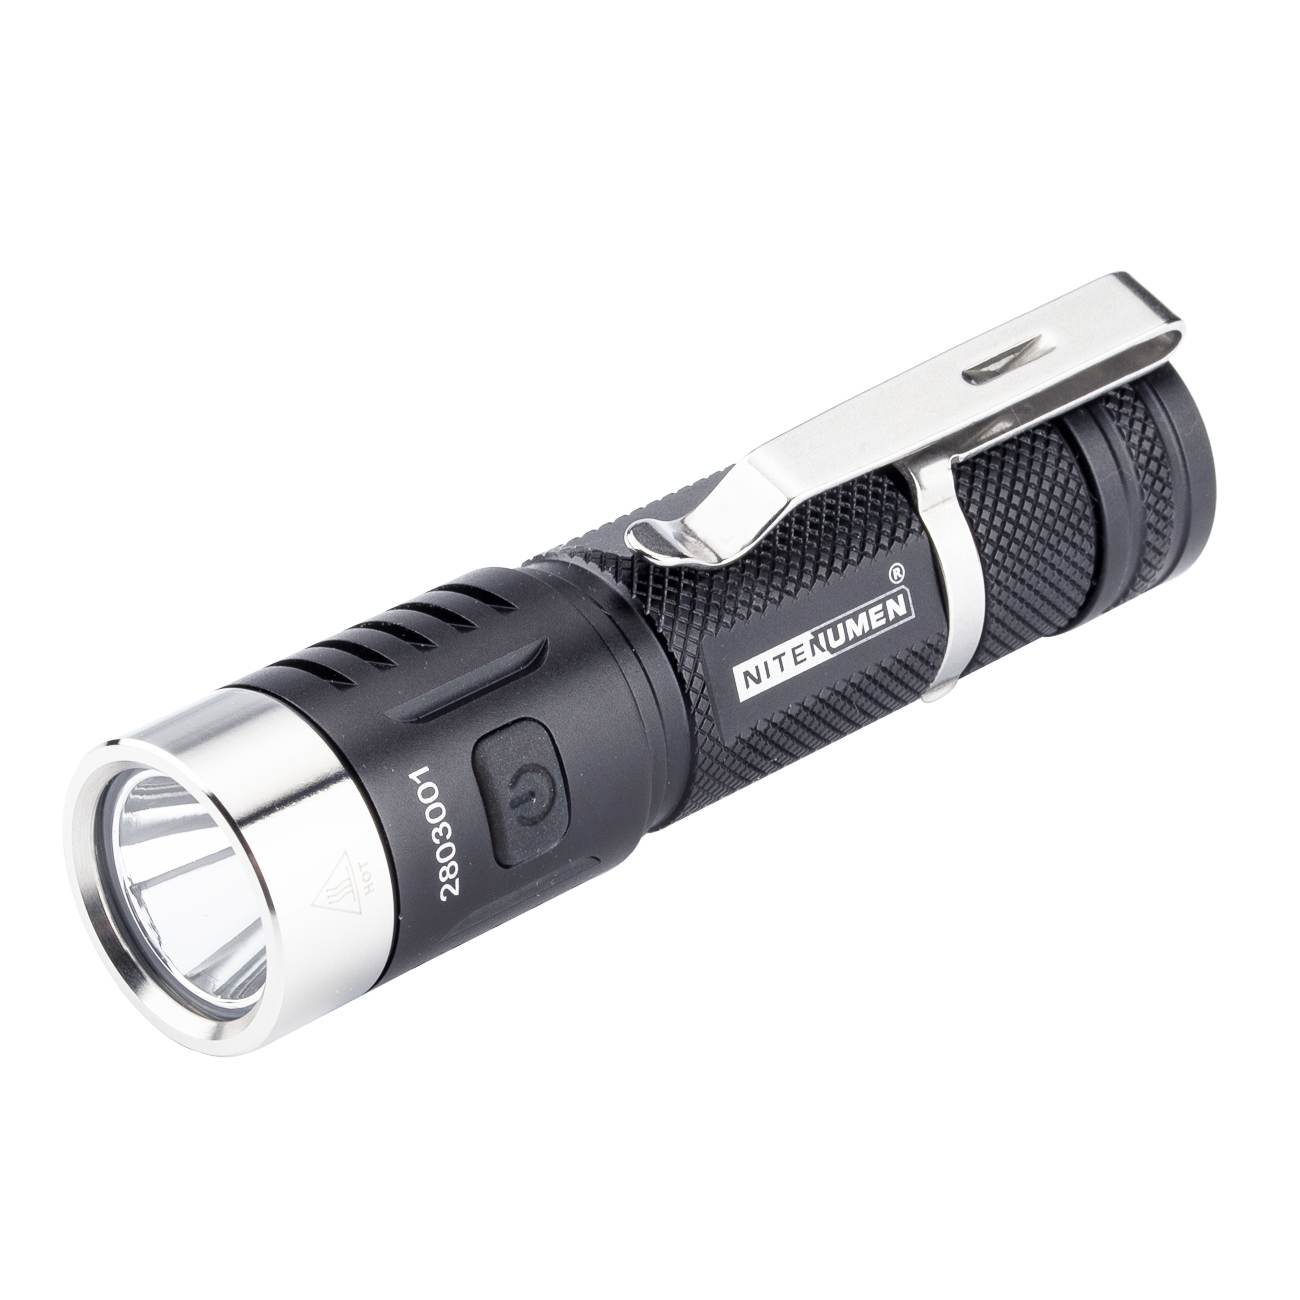 Nitenumen C8 850 Lumens Flashlight